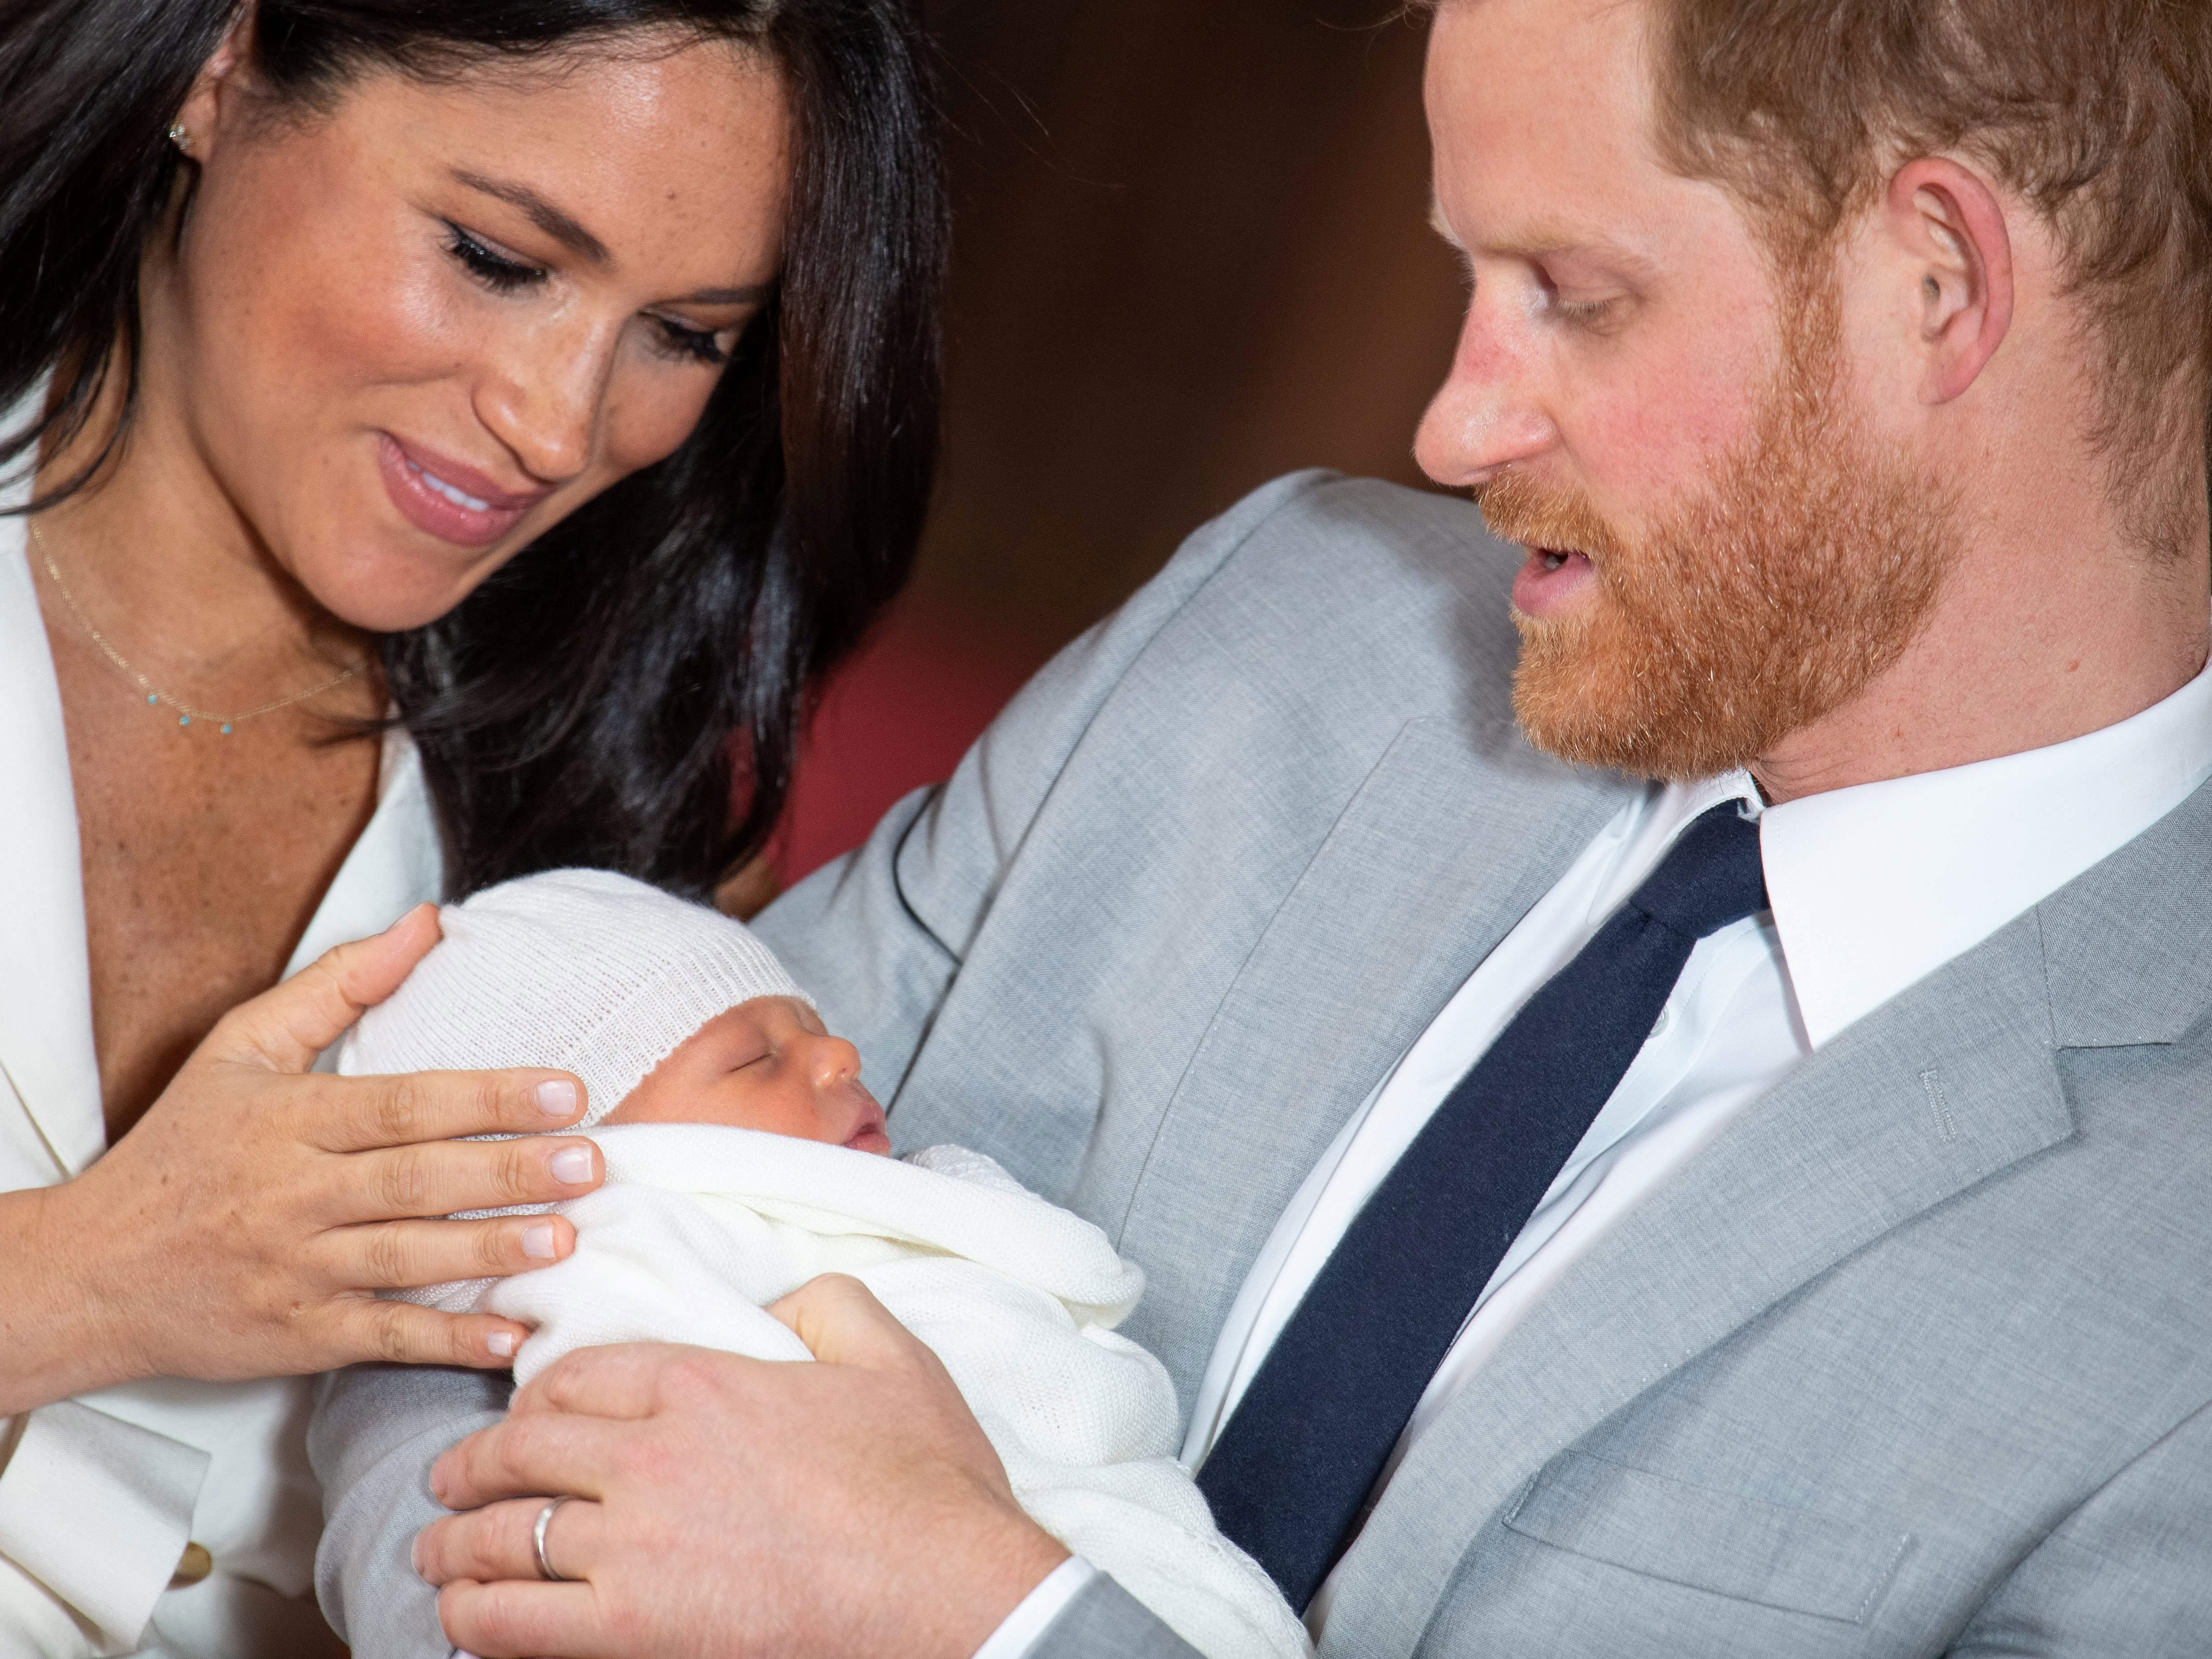 Meghan Markle 'wants to raise Archie as a vegan' but the Queen 'won't tolerate it'